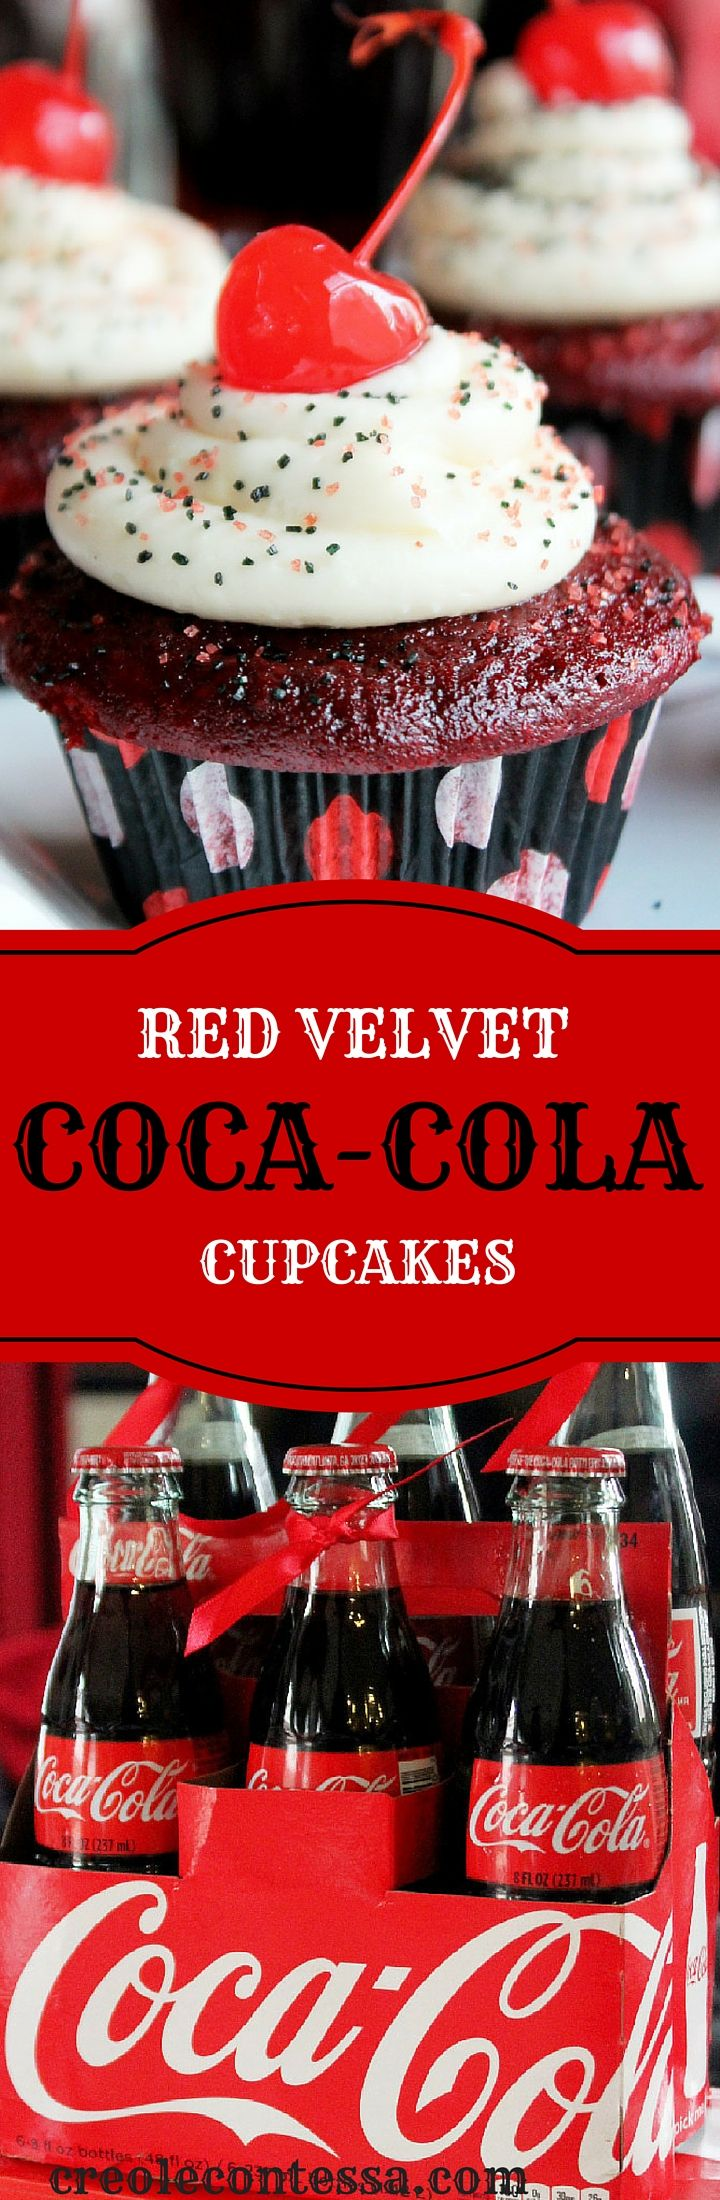 Coca-Cola Red Velvet Cupcakes-Creole Contessa Win a $400 Prize Pack Giveaway! #HomeBowlHeroContest